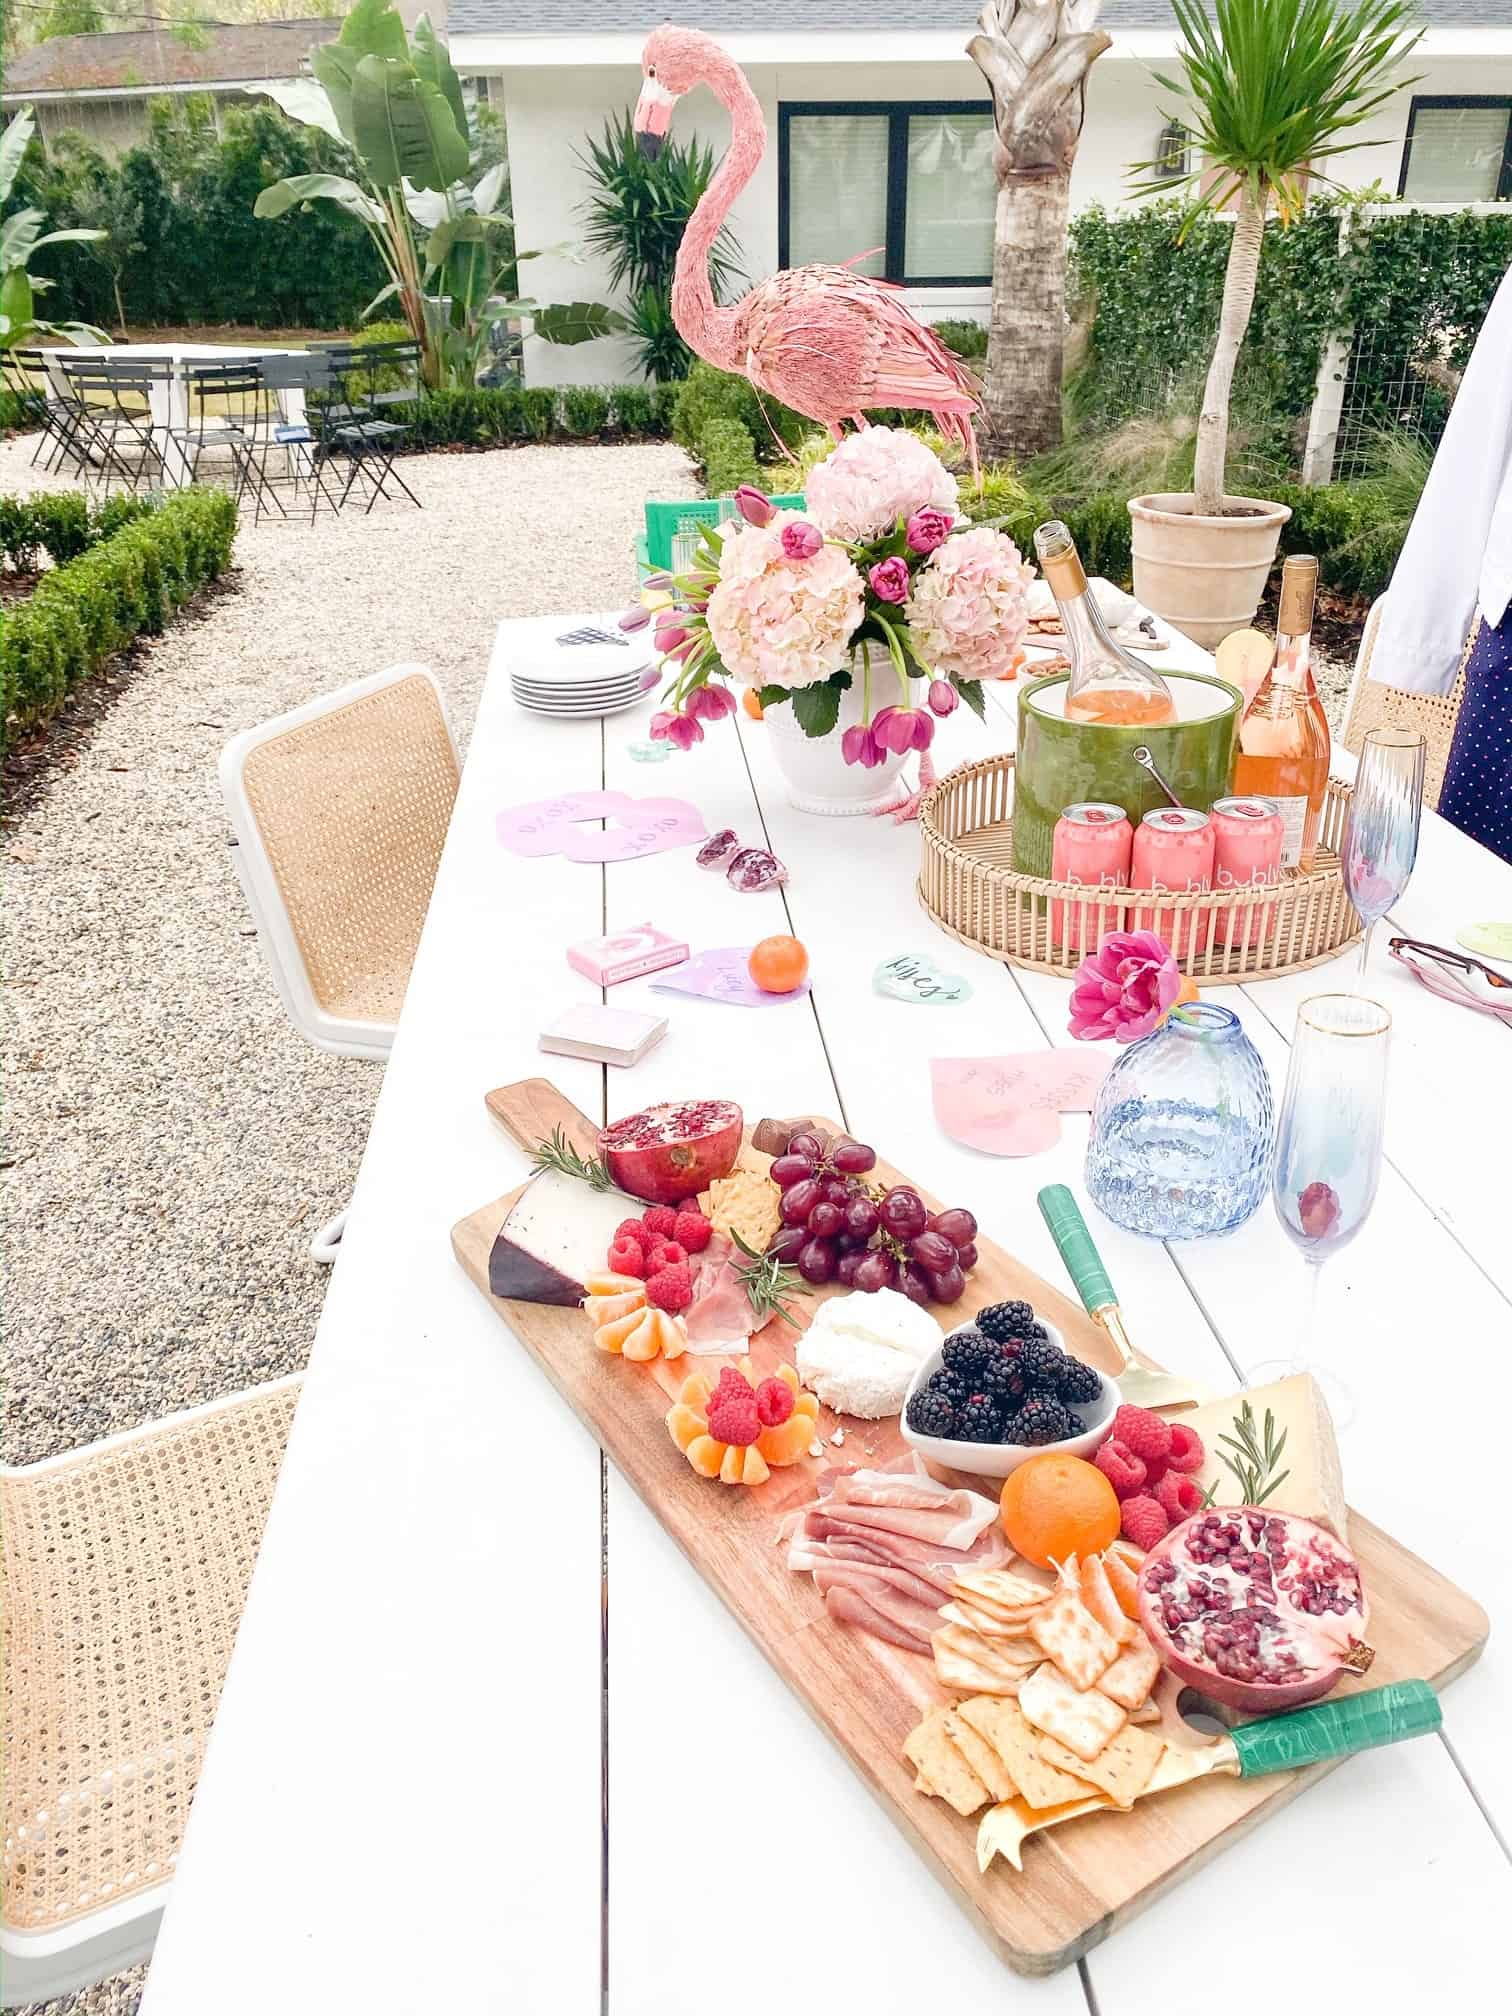 Behind The Scenes Draper James Trip by popular Dallas fashion blog, Glamorous Versatility: image of a white table set with a charcuterie board, Bubly drinks, pink floral arrangement and a pink flamingo decor at The Park on Saint Simons Island.